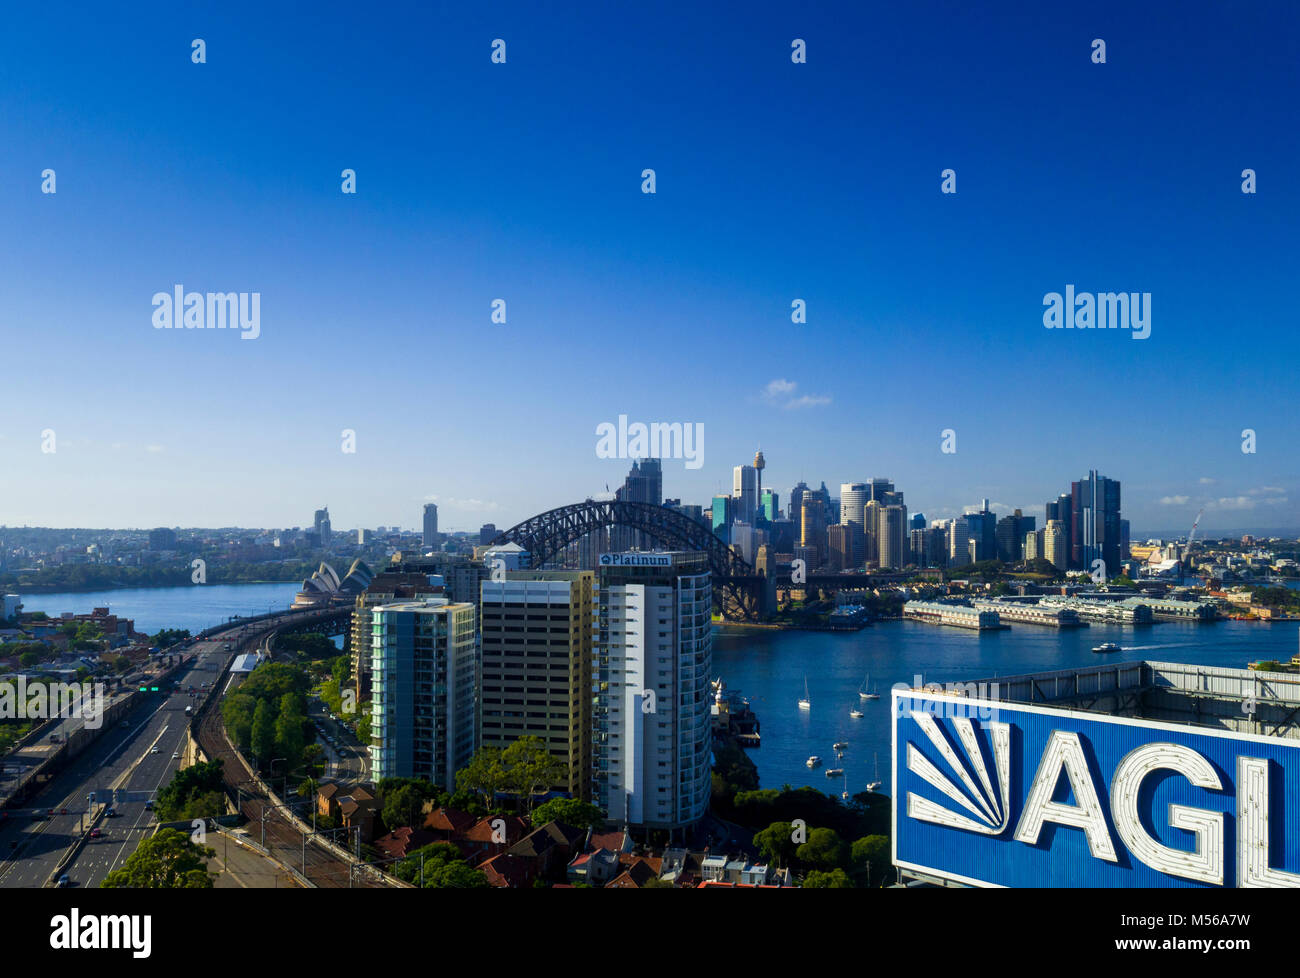 View of Sydney Harbour including Opera House, Harbour Bridge and central business district, Sydney, NSW, Australia - Stock Image